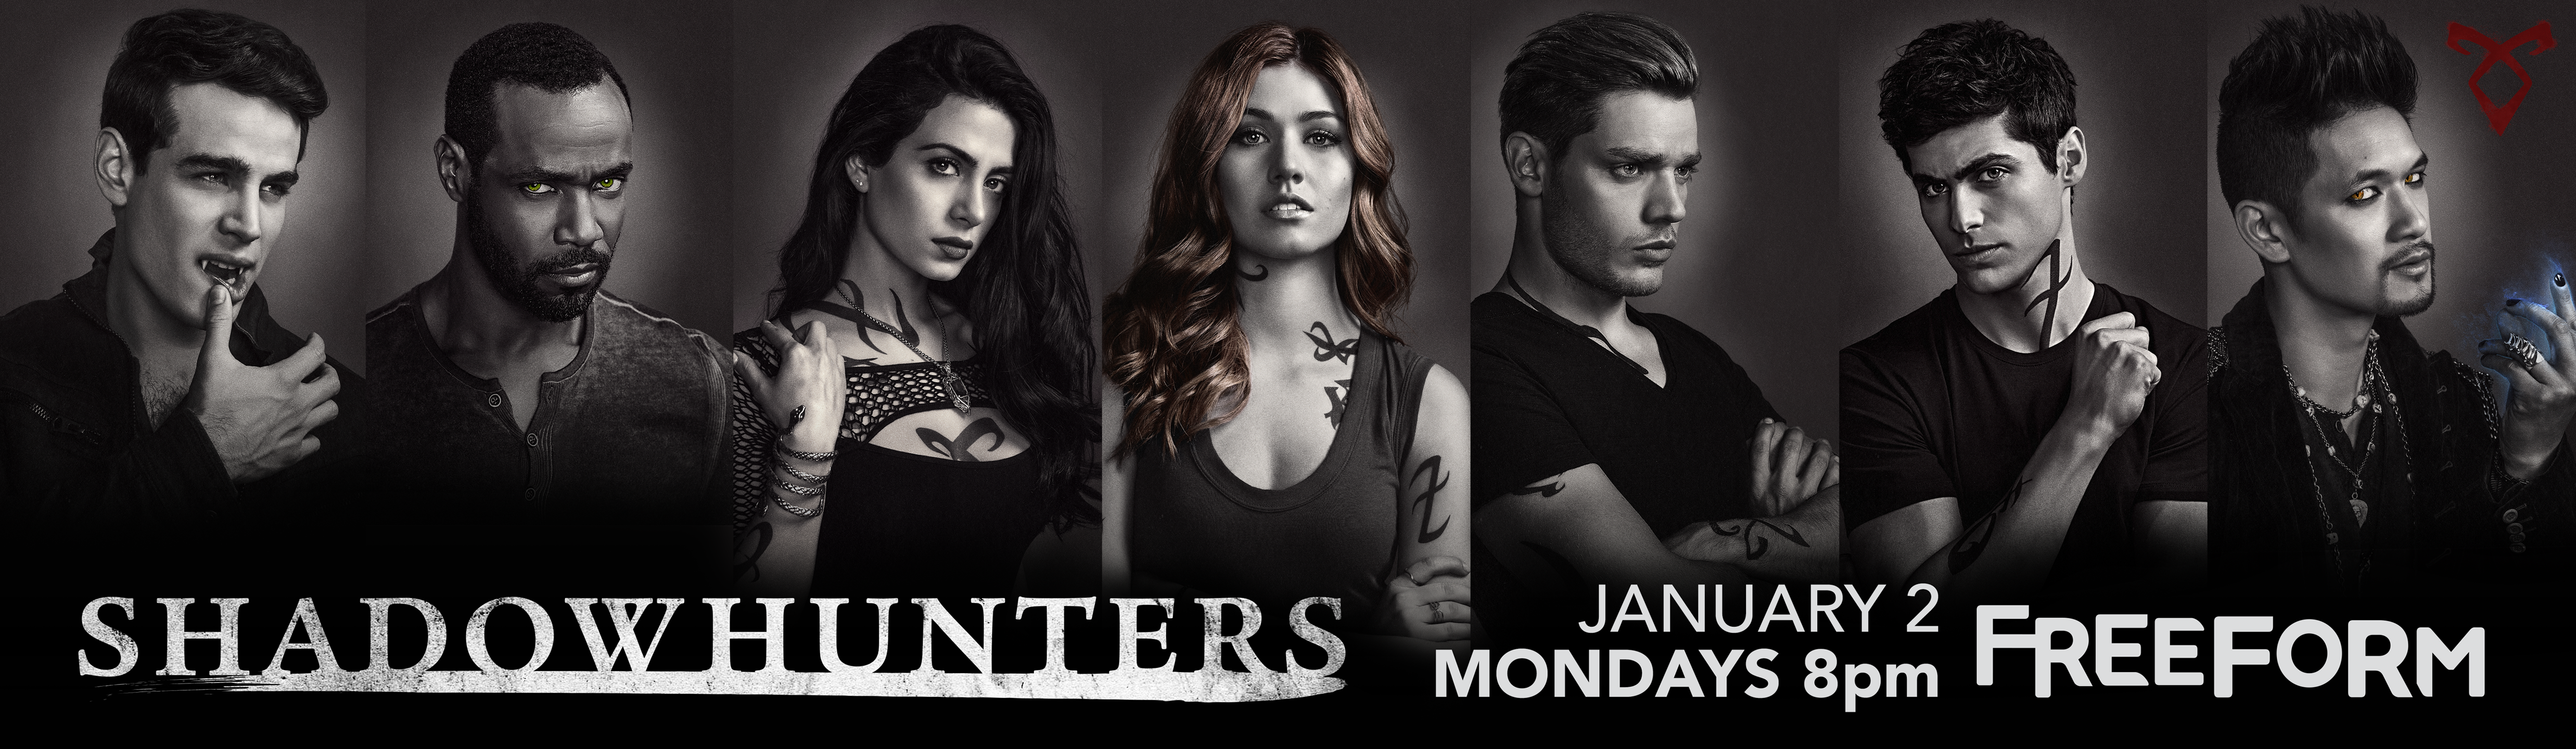 Shadowhunters - Are You Ready To Unlock The Final Shadowhunters Season 2 Posters? We've Got Two More! - 1002